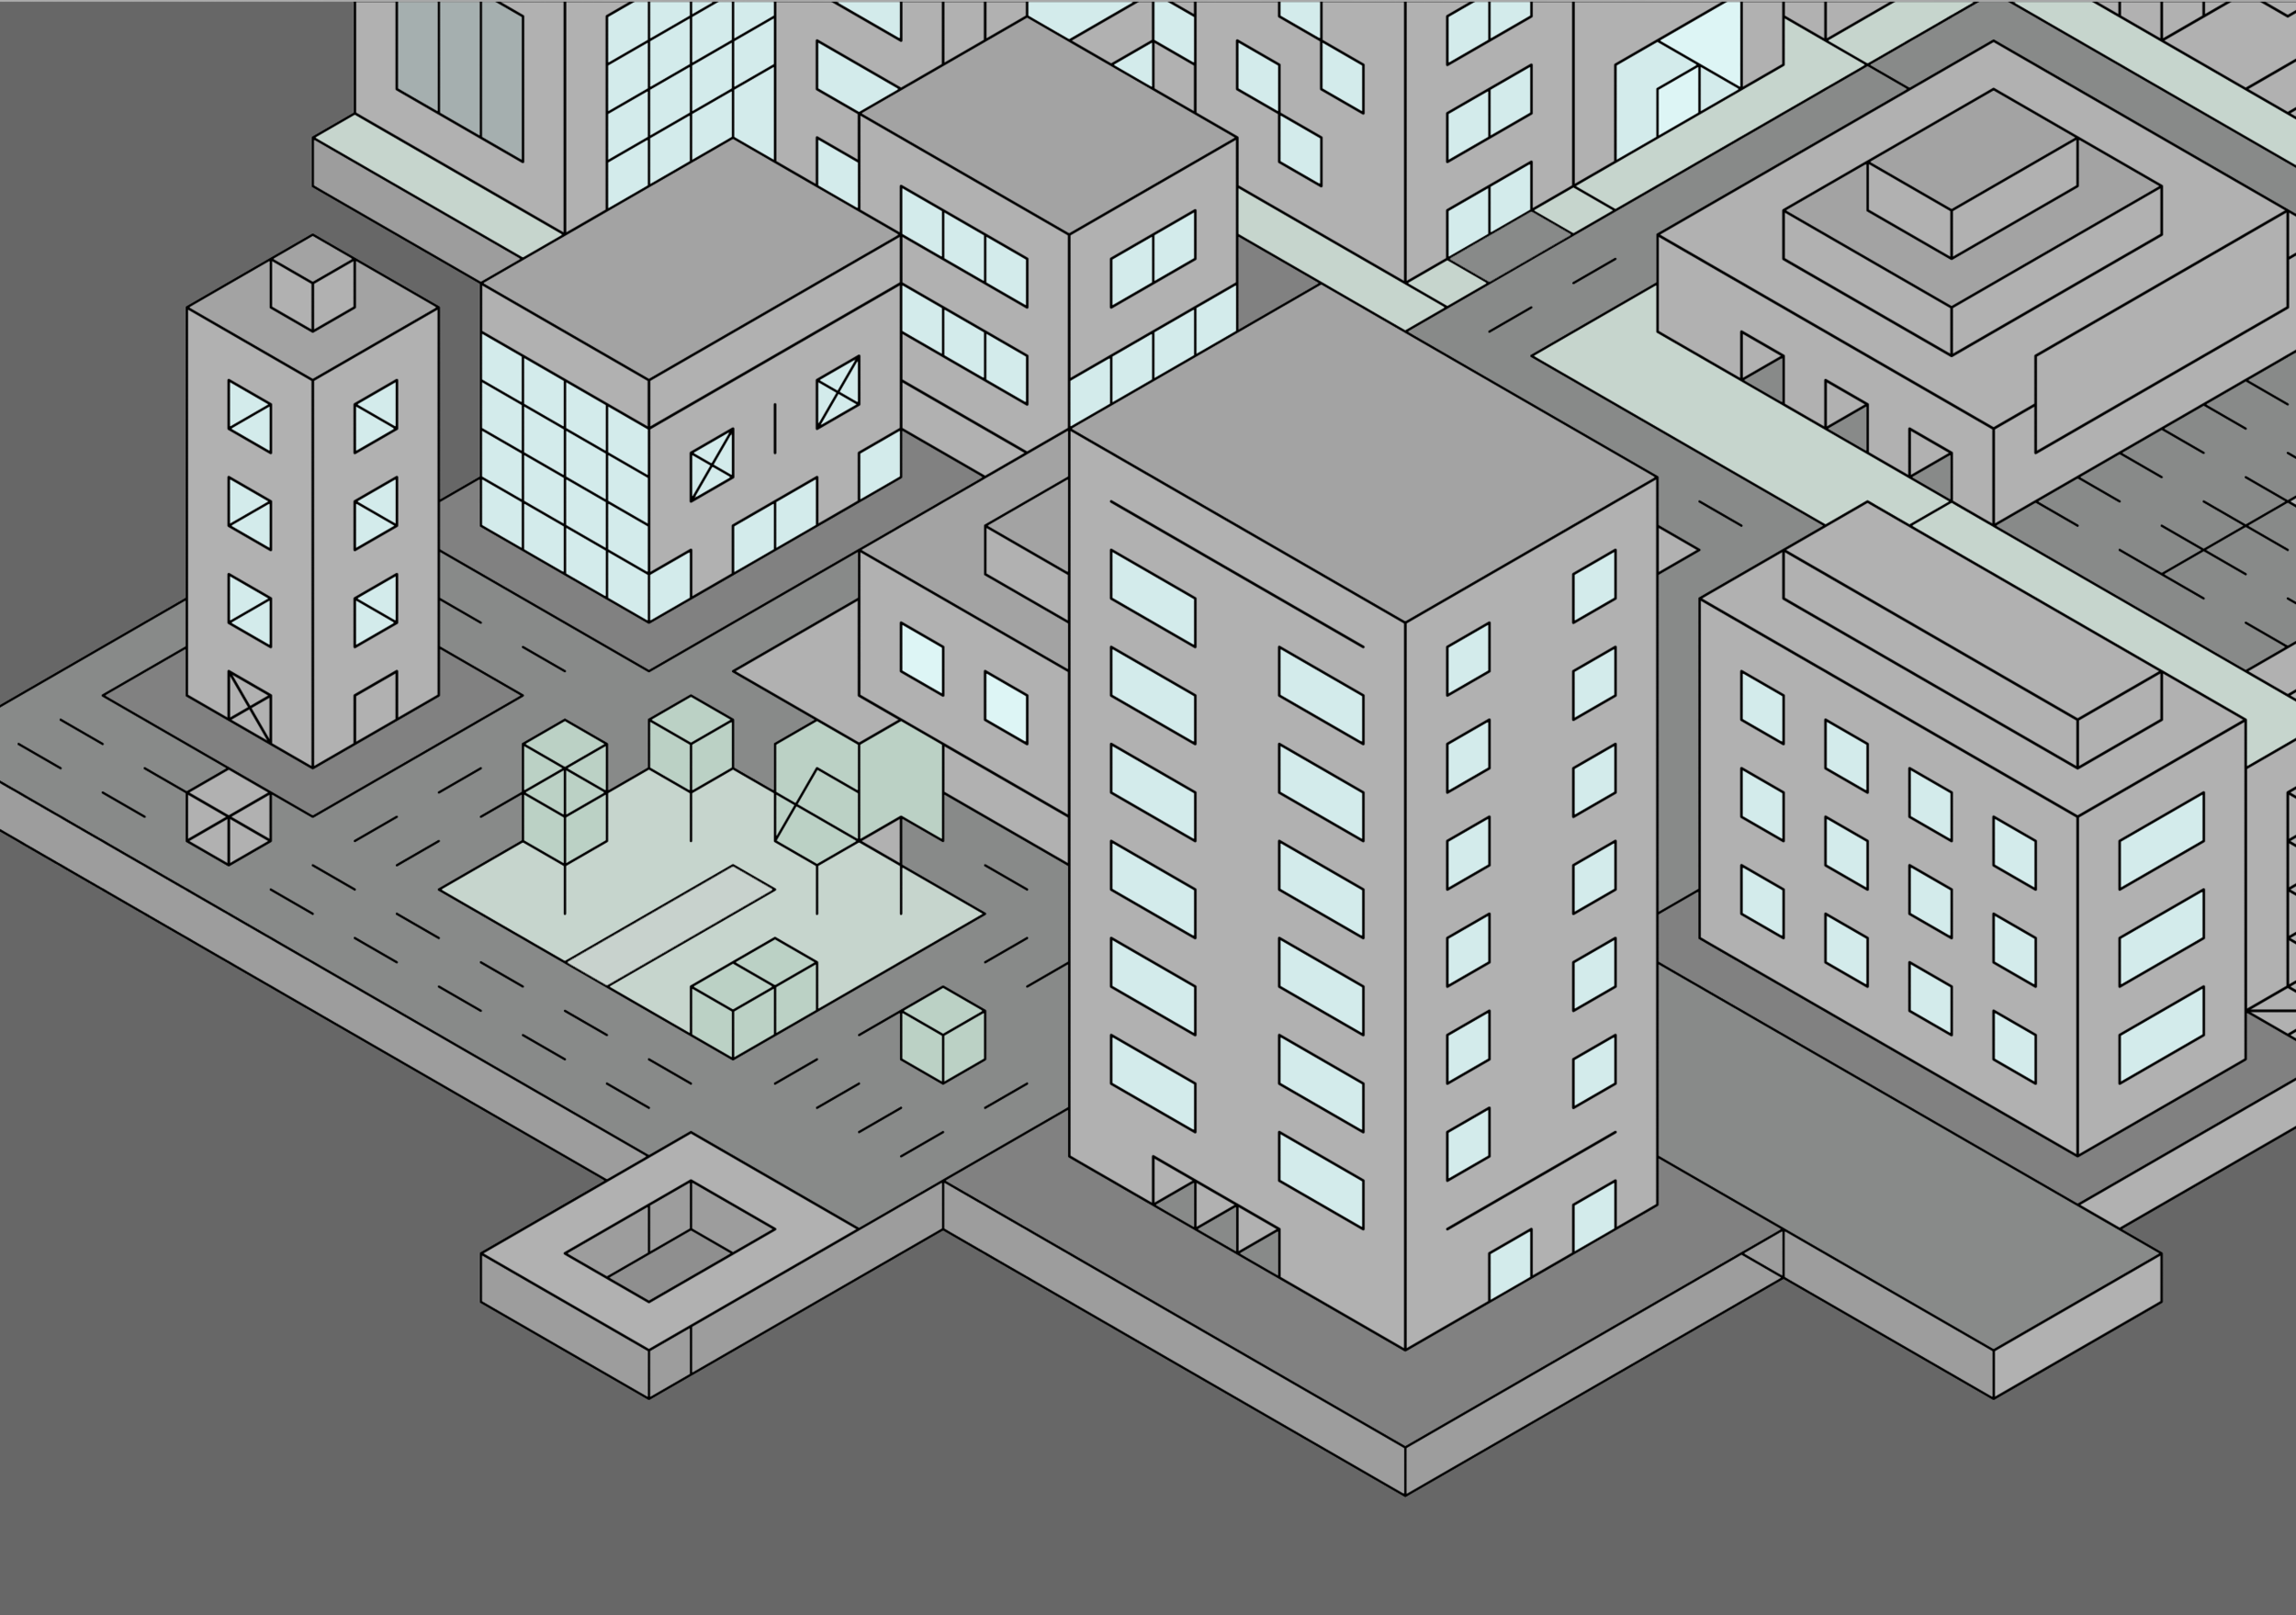 isometric_WIP.png